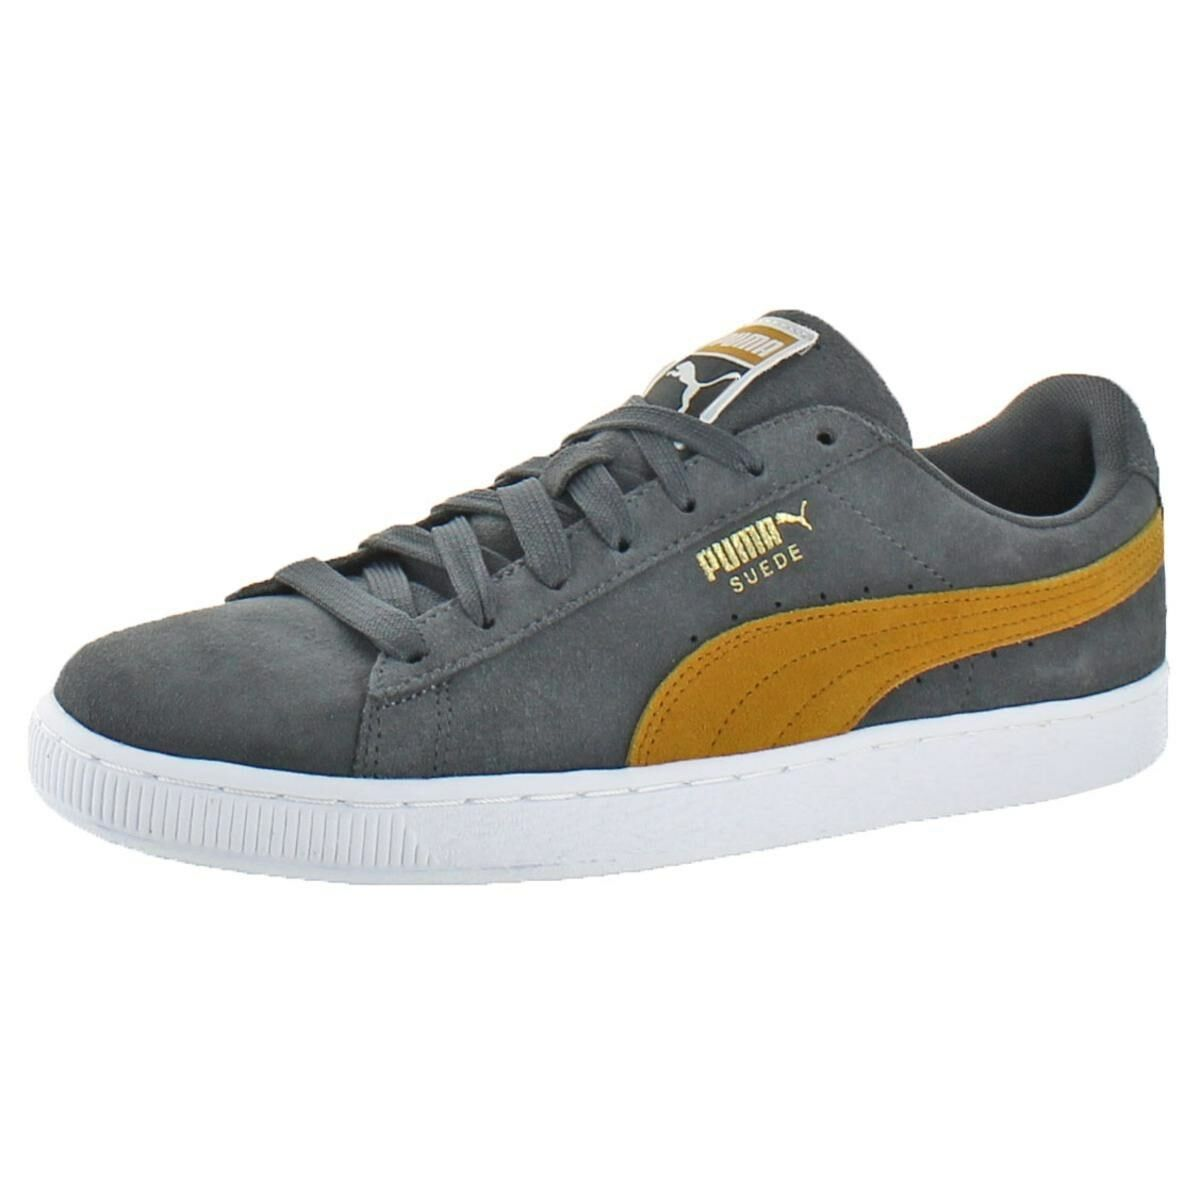 buy online 4c88f 44cd7 PUMA Men's Suede Classic Shoes Size 11 Gray Yellow Iron Gate Buckthorn Brwn